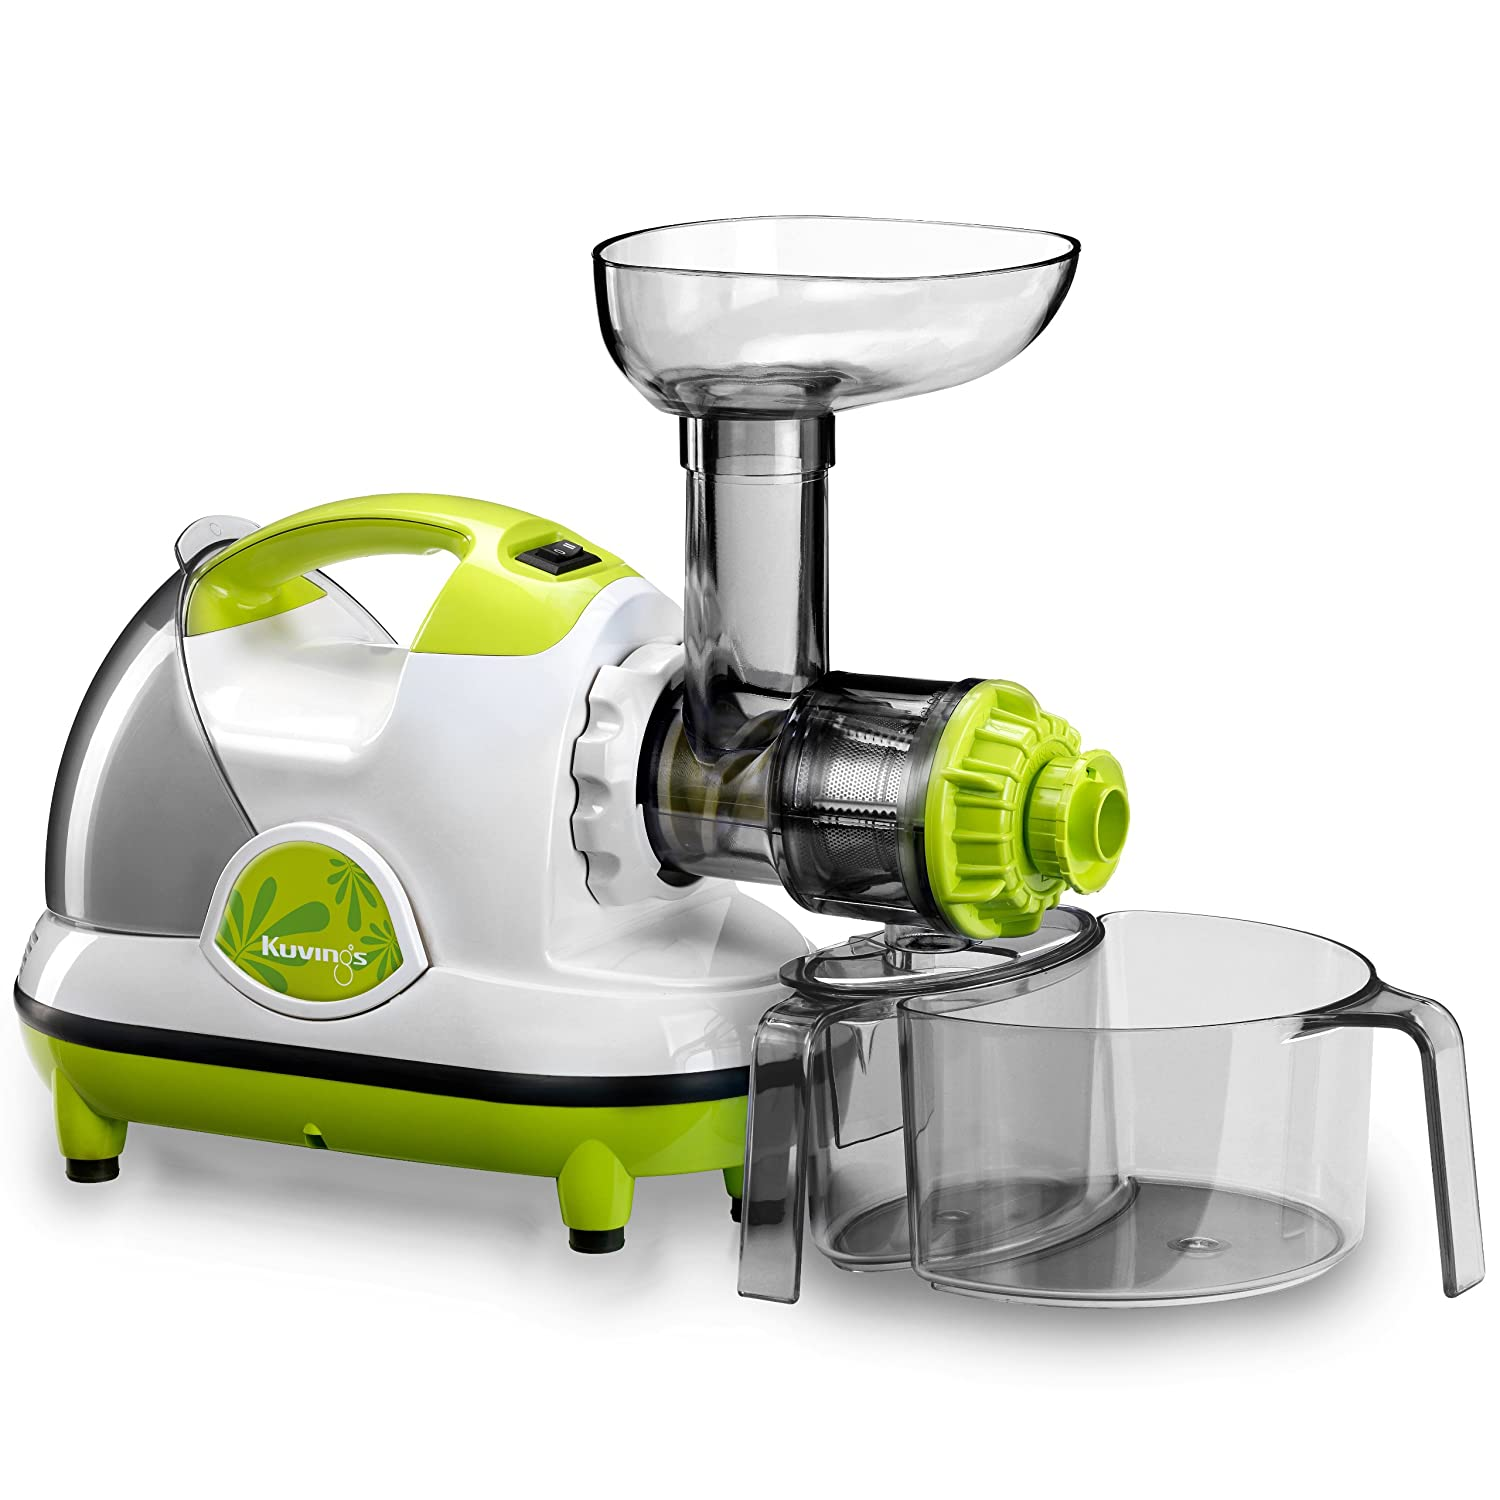 Best Masticating Juicer Recipes : 81M6PfZyMNL._SL1500_.jpg